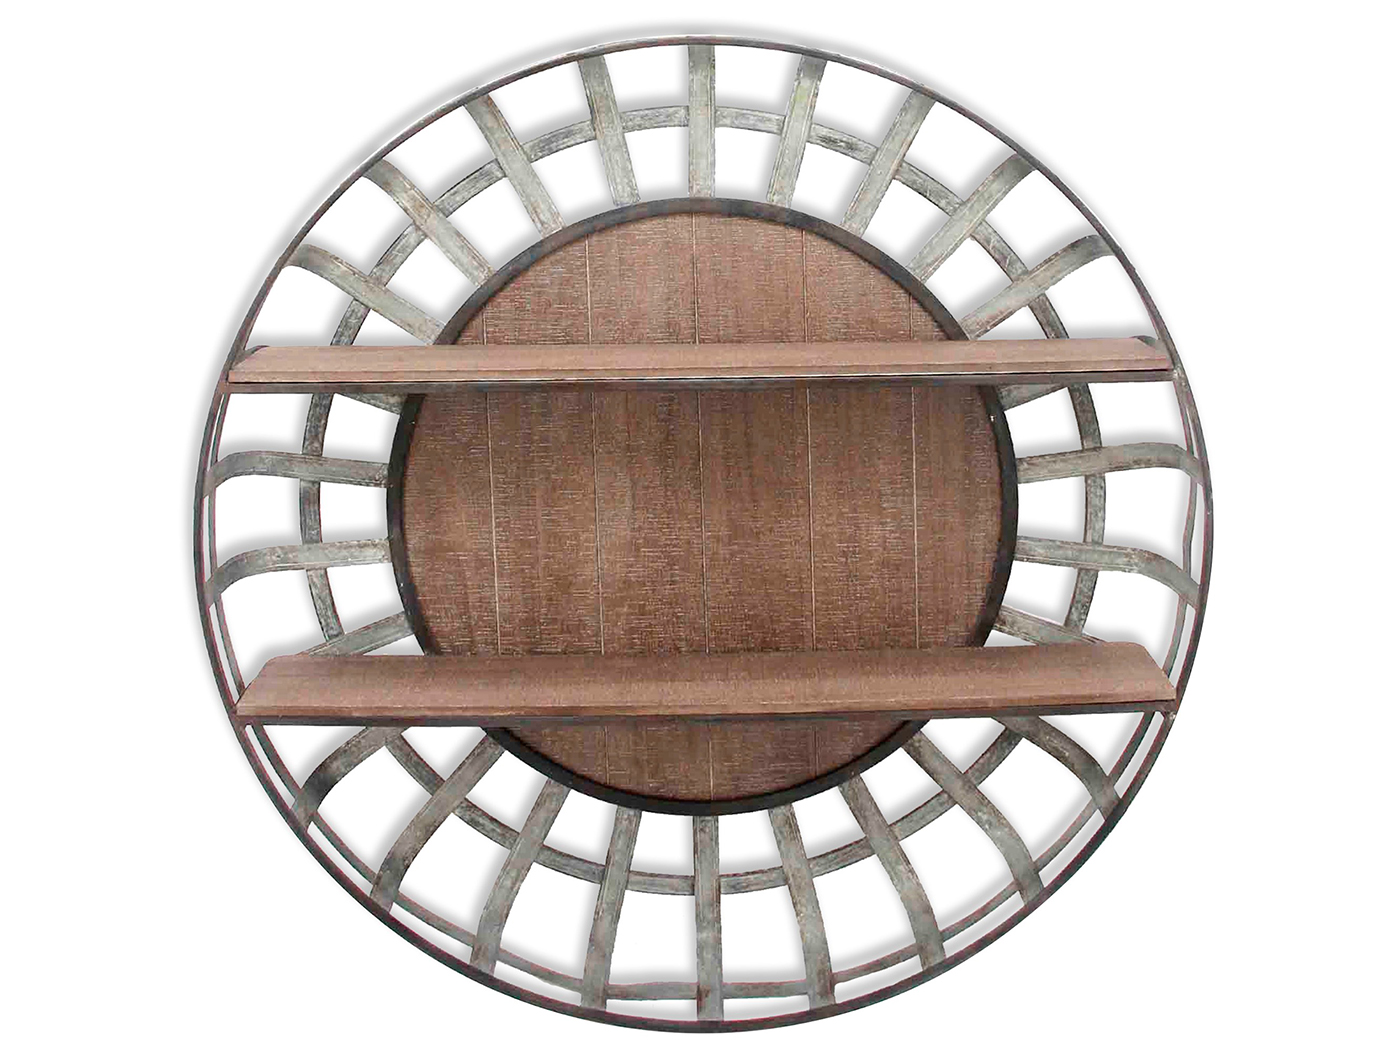 Galvanized Metal and Wood Round Wall Shelf 35.5""